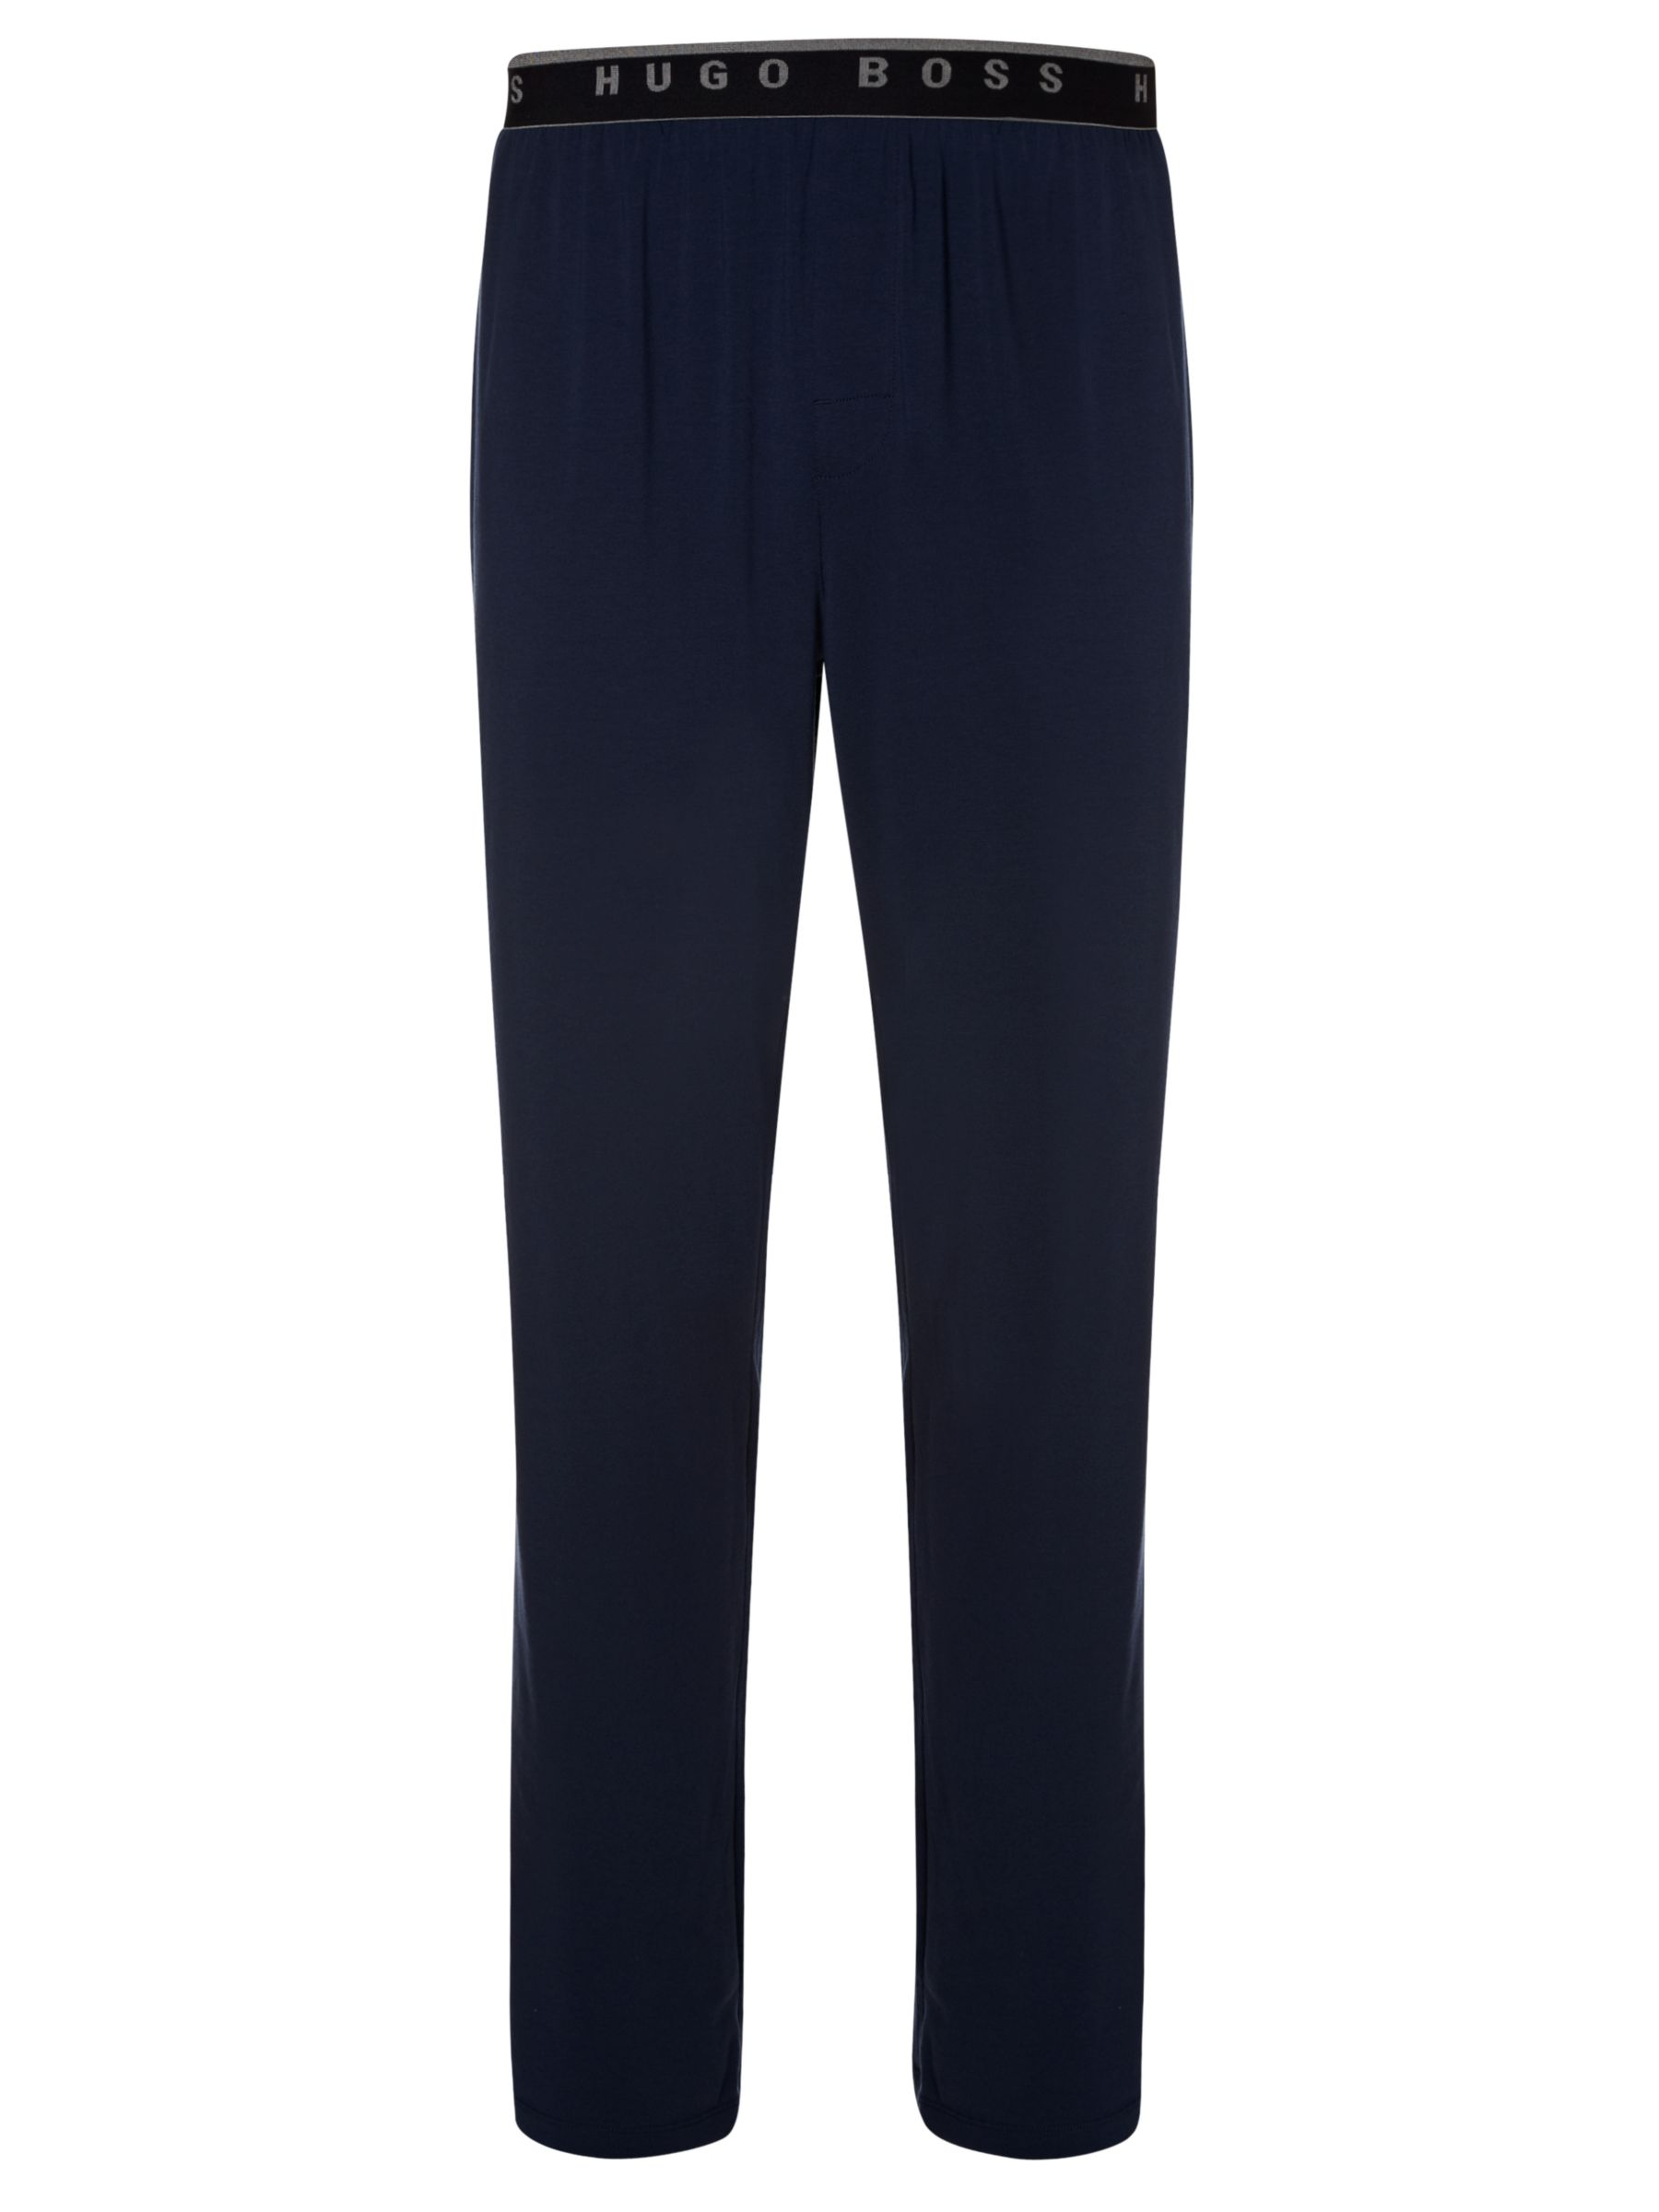 Hugo Boss Cotton Lounge Pants, Navy